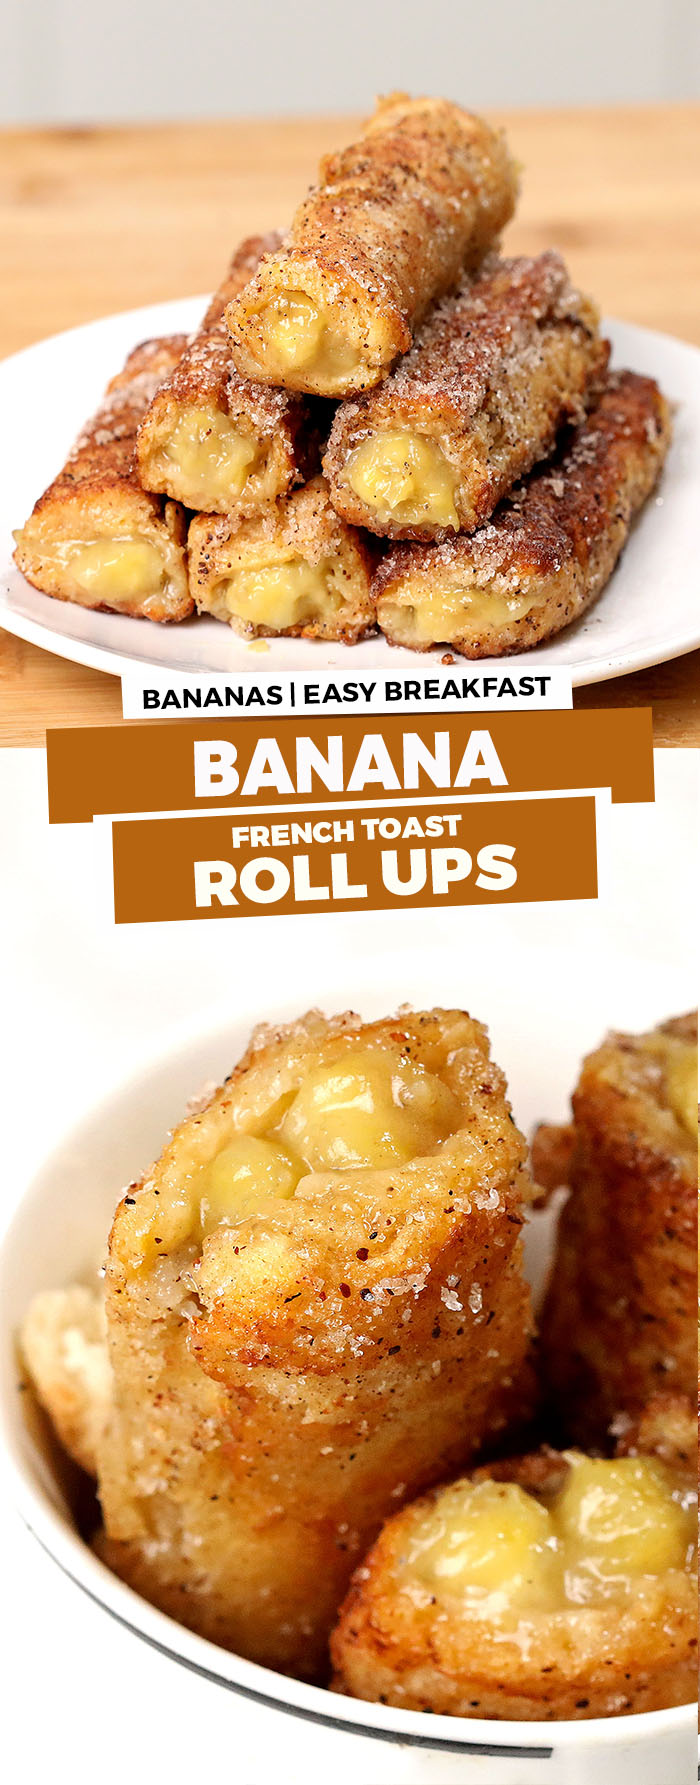 Banana French Toast Roll Ups - Delicious sweet on-the-go snack or breakfast, crispy on the outside, sweet and creamy on the inside.